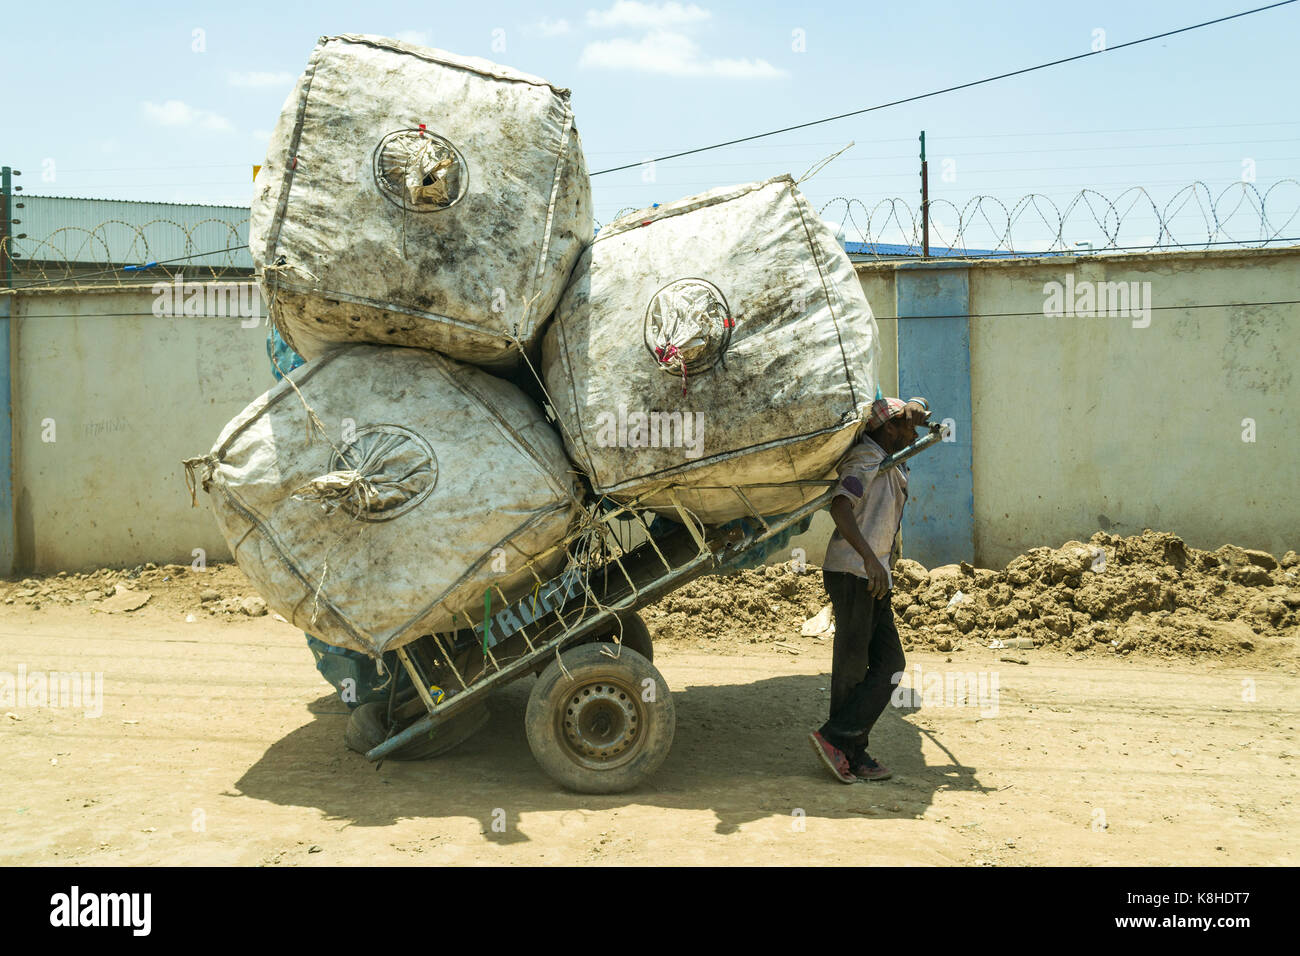 Hand cart puller stands resting in the shade of huge bags filled with plastic to recycle, Nairobi, Kenya - Stock Image